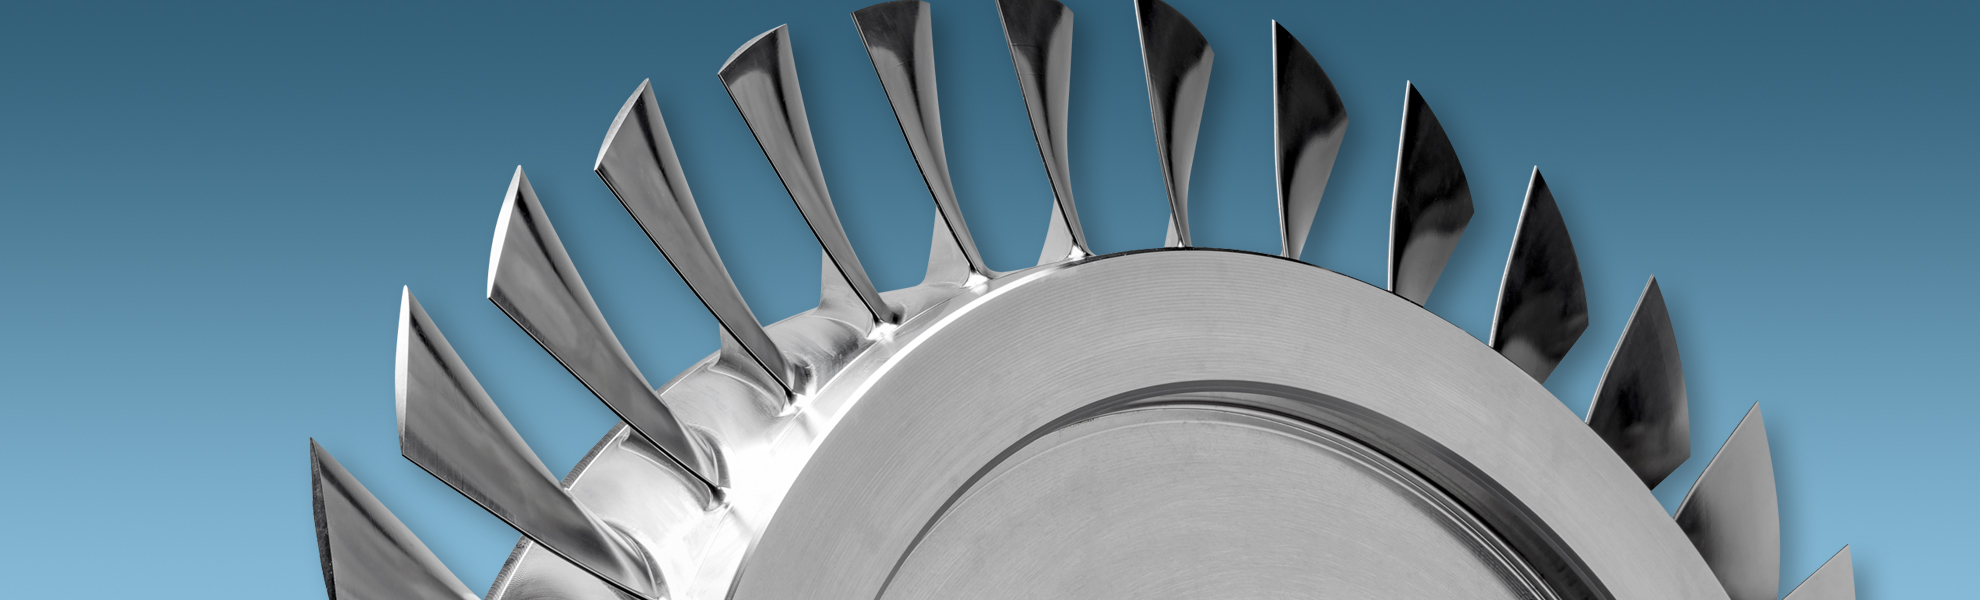 Roeders Machines Blisk Production